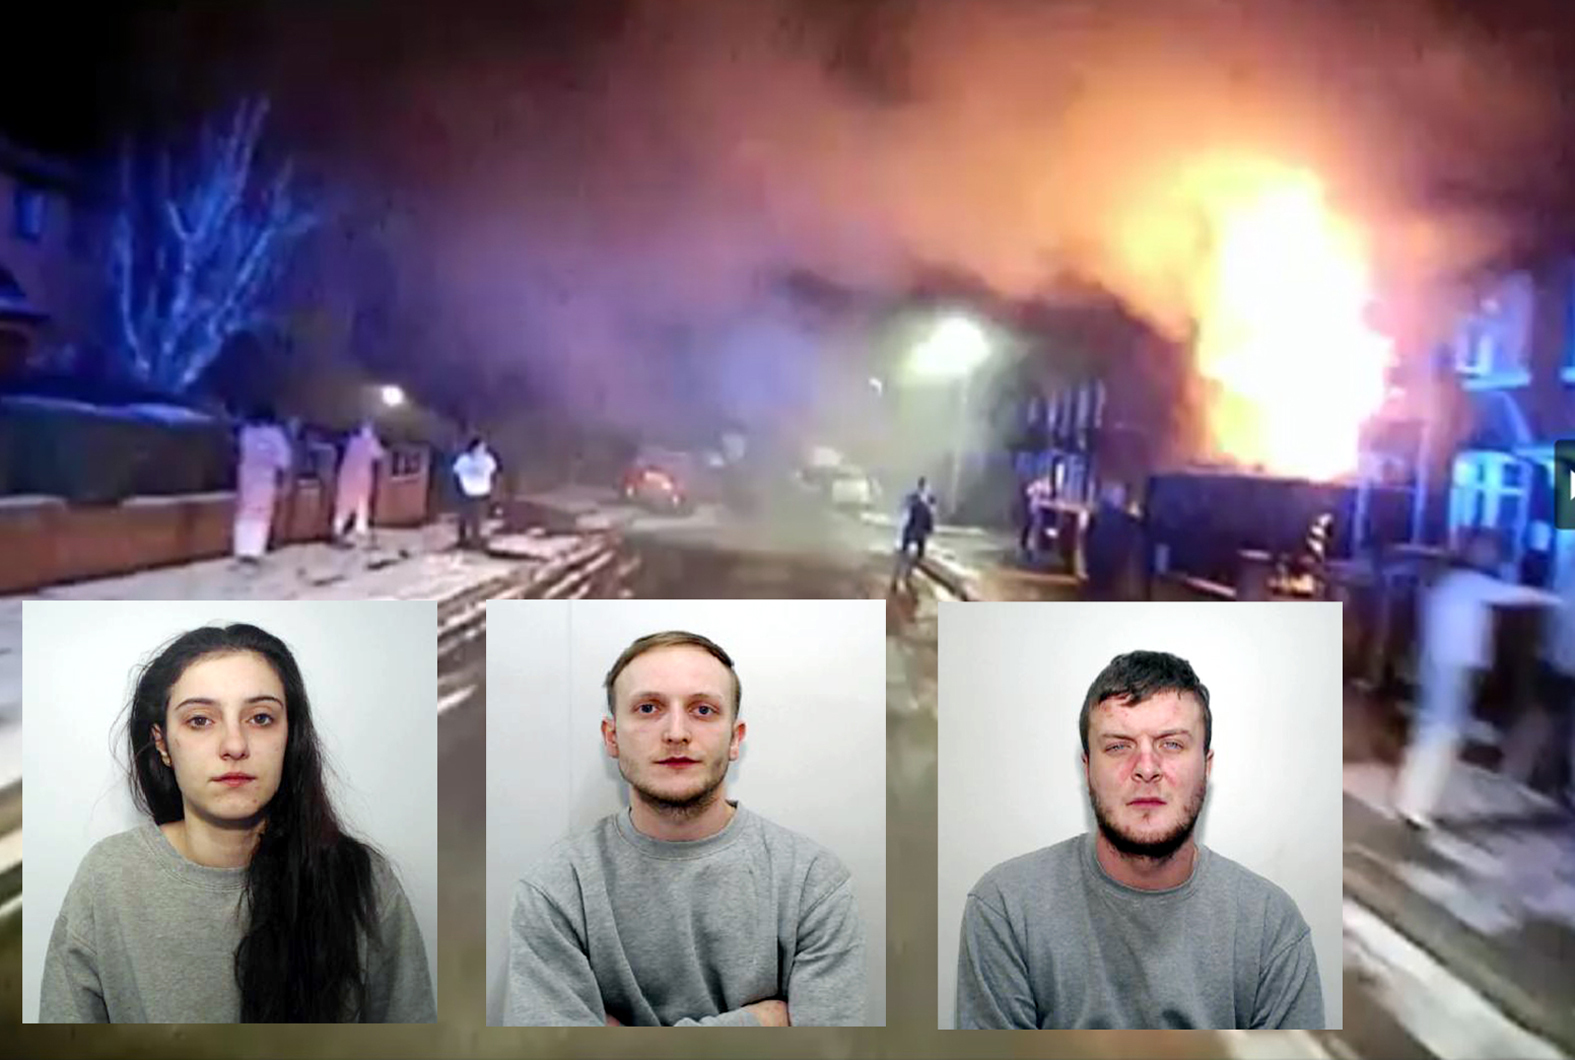 Courtney Brierley, Zak Bolland and David Worrall with an image of the fire taken from a video from Greater Manchester Fire and Rescue Service